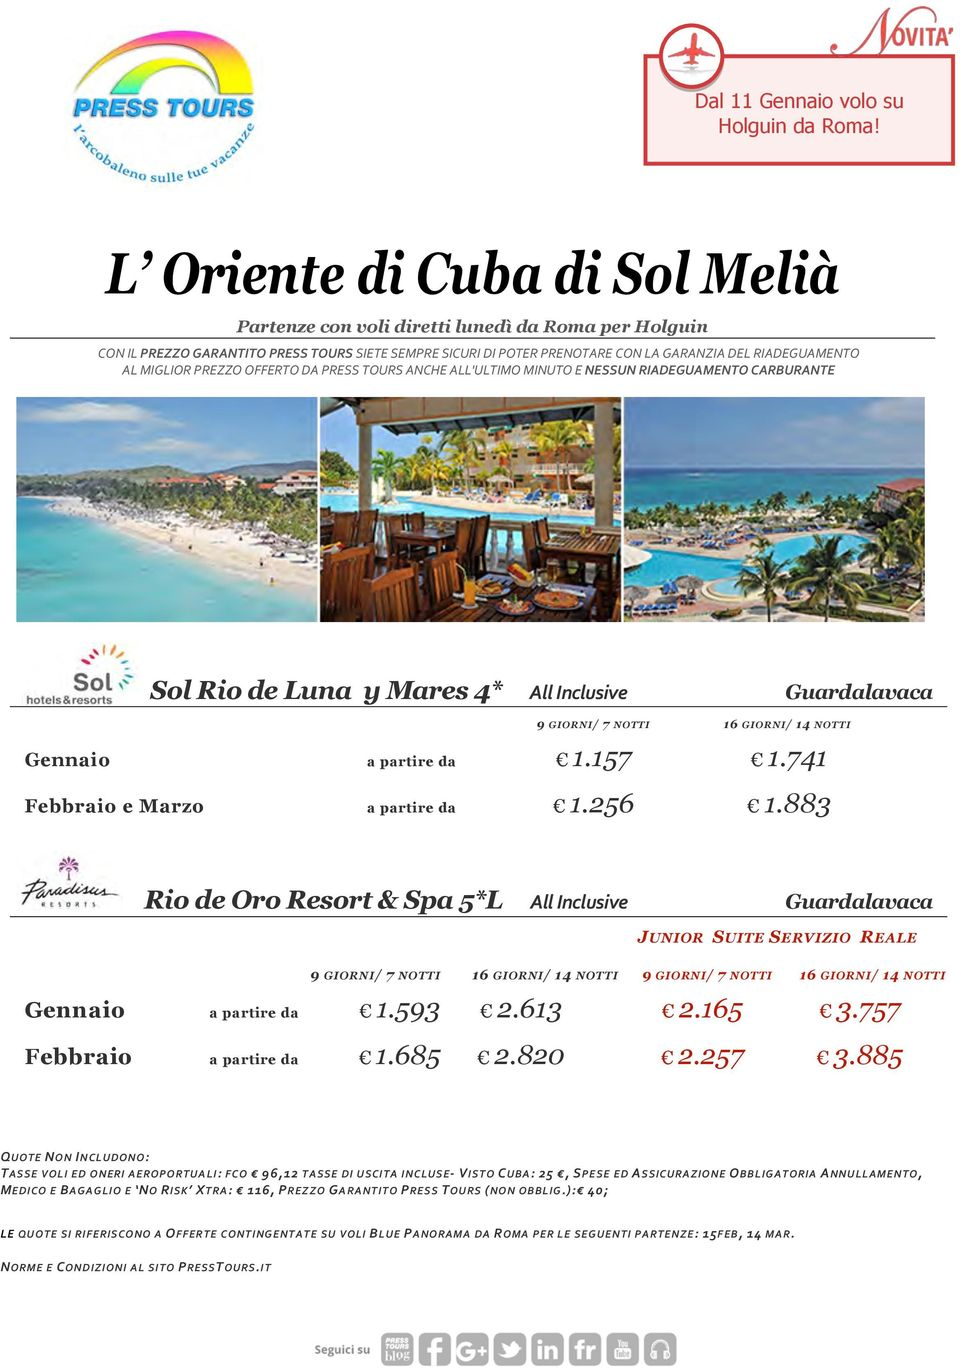 883 Rio de Oro Resort & Spa 5*L All Inclusive Guardalavaca JUNIOR SUITE SERVIZIO REALE 9 GIORNI/ 7 NOTTI 16 GIORNI/ 14 NOTTI 9 GIORNI/ 7 NOTTI 16 GIORNI/